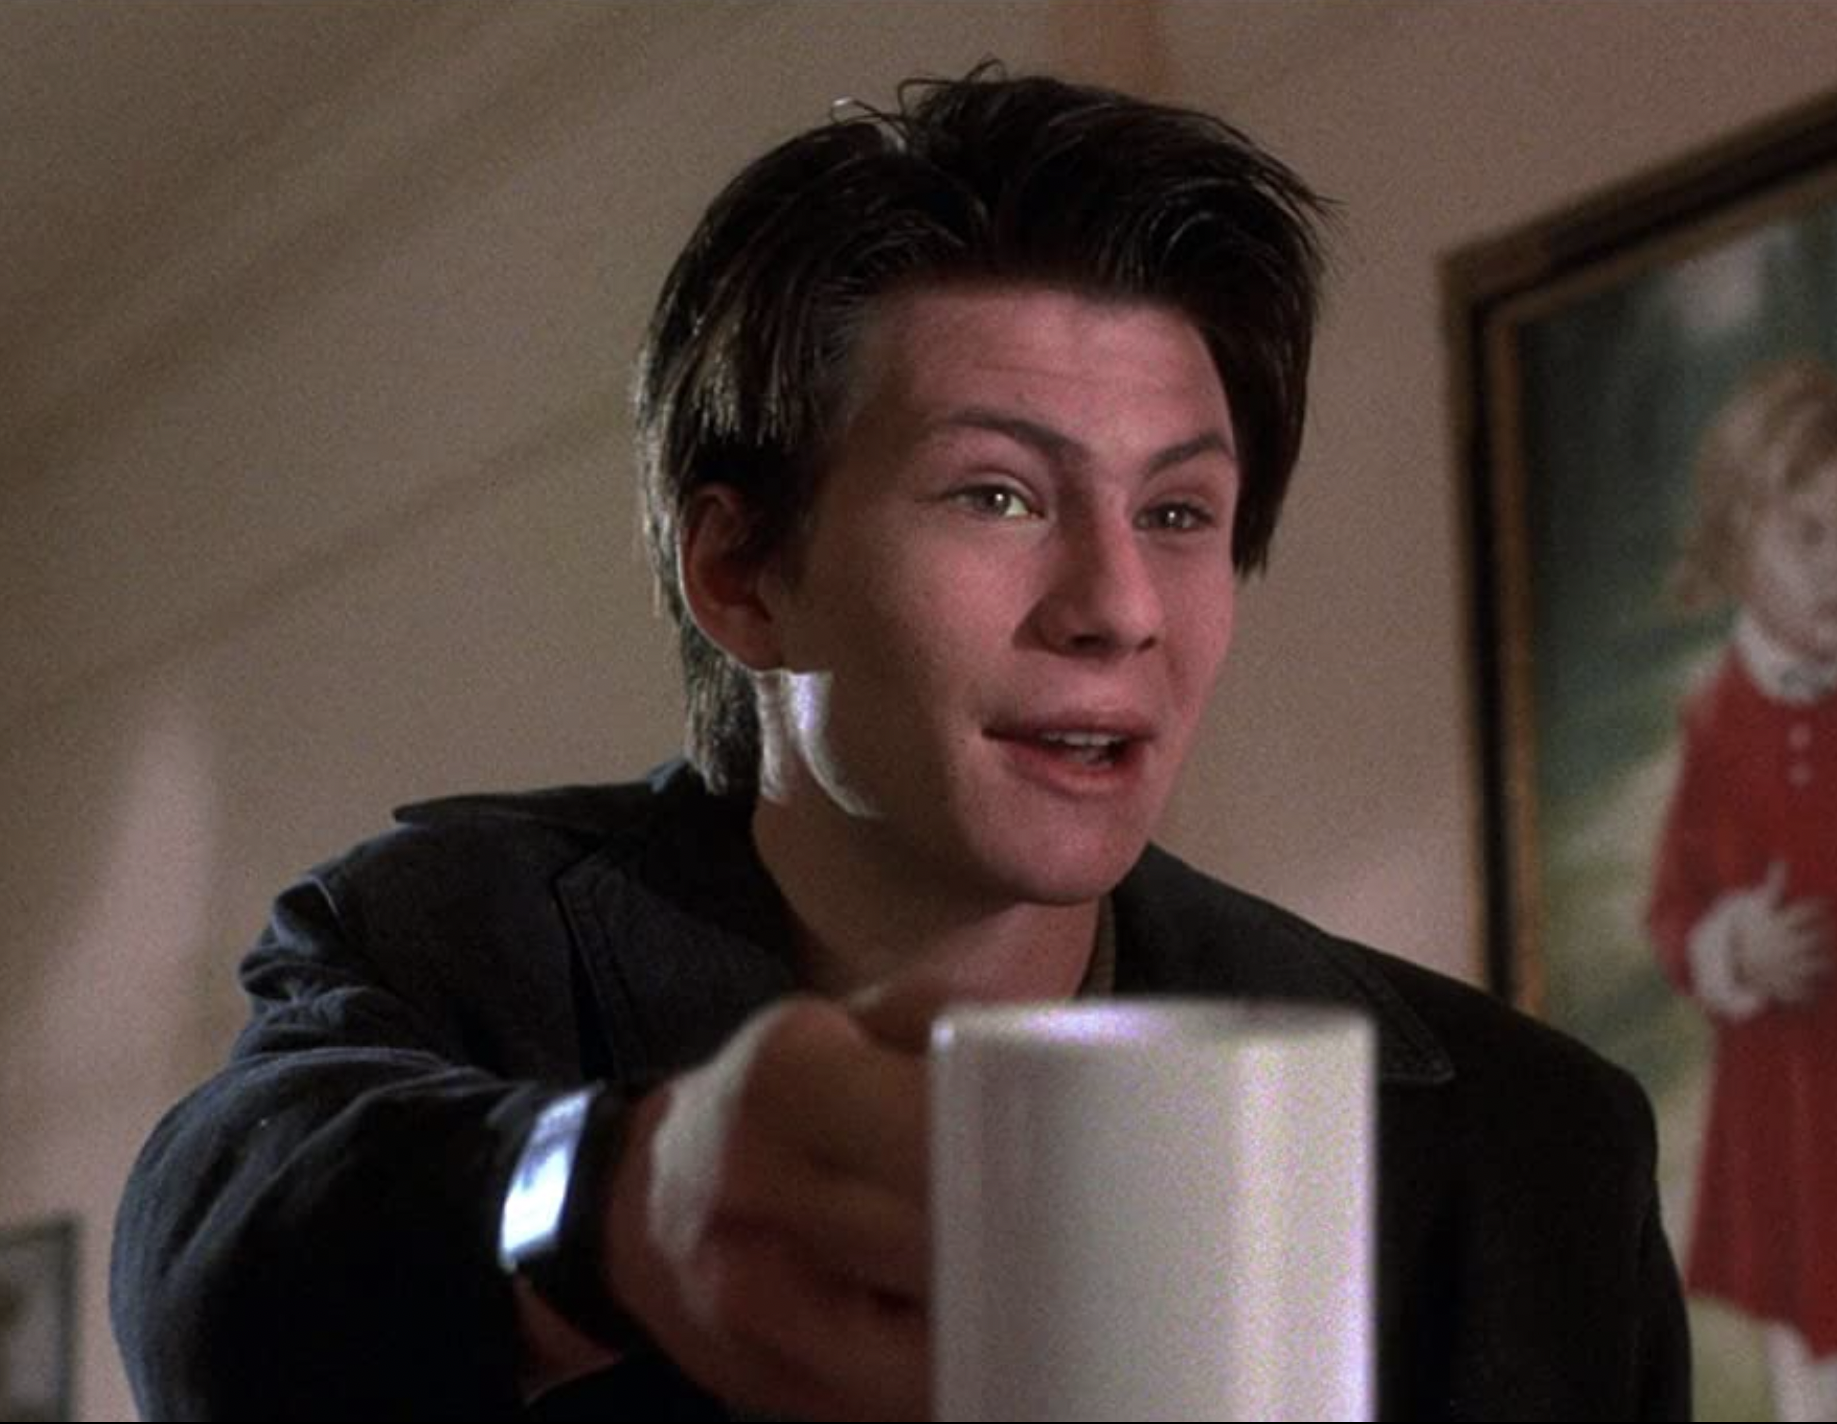 Screenshot 2021 04 20 at 10.05.44 e1618909635835 20 Things You Probably Didn't Know About Christian Slater